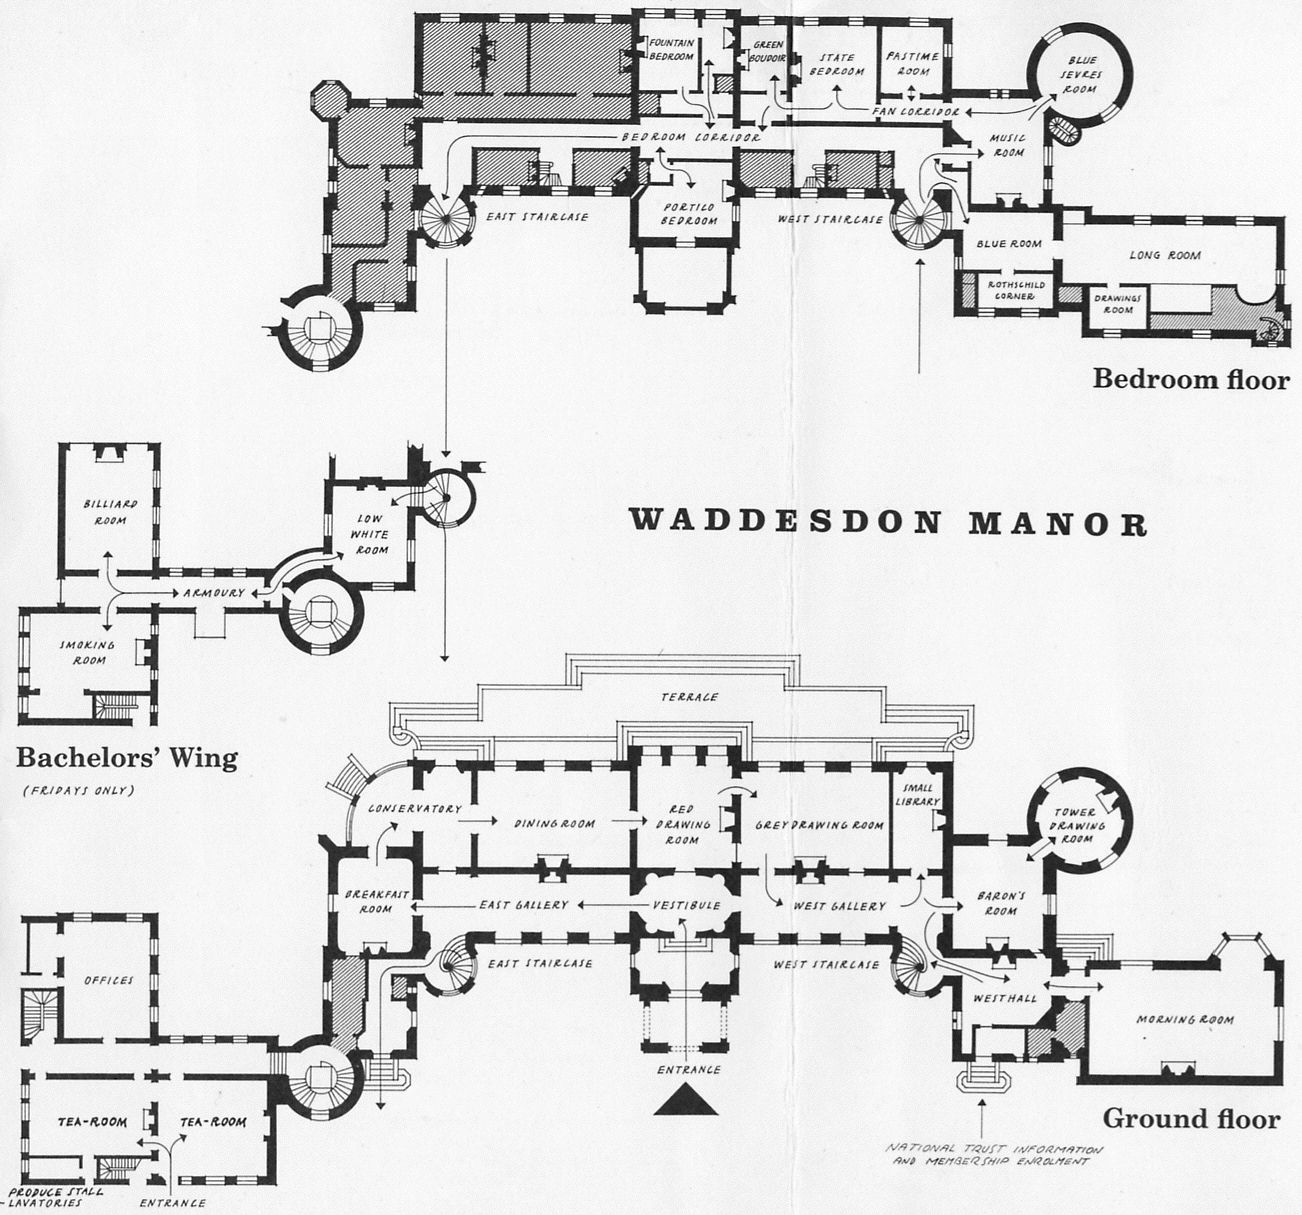 Waddesdon manor plans of the ground floor and chamber for Manor floor plans